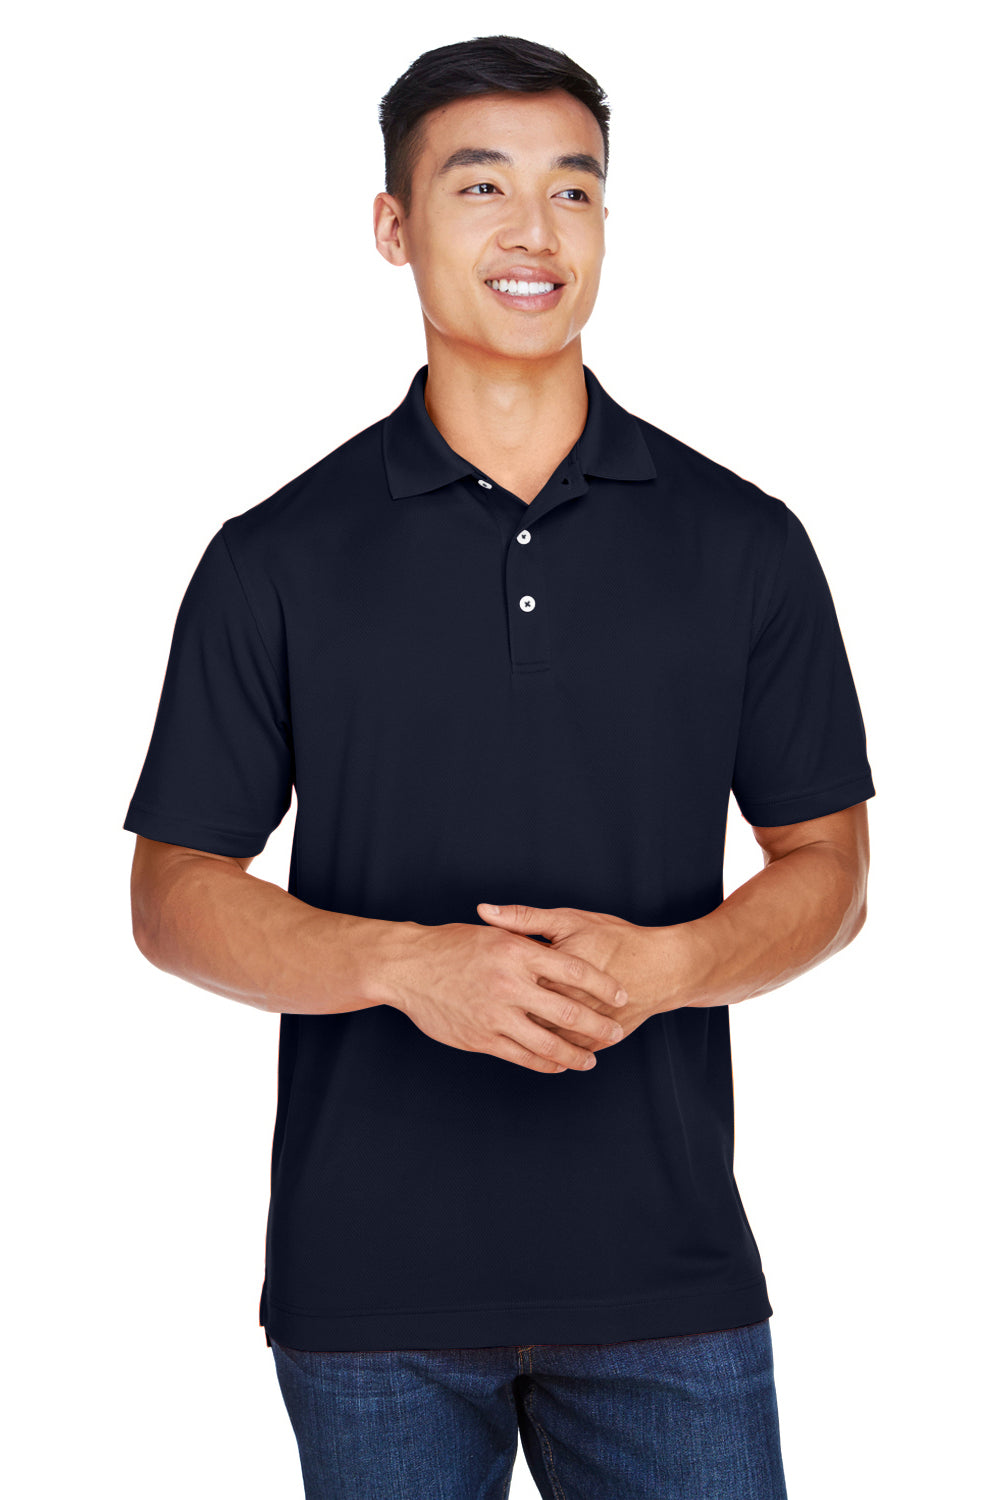 Harriton M353 Mens Double Mesh Moisture Wicking Short Sleeve Polo Shirt Navy Blue Front